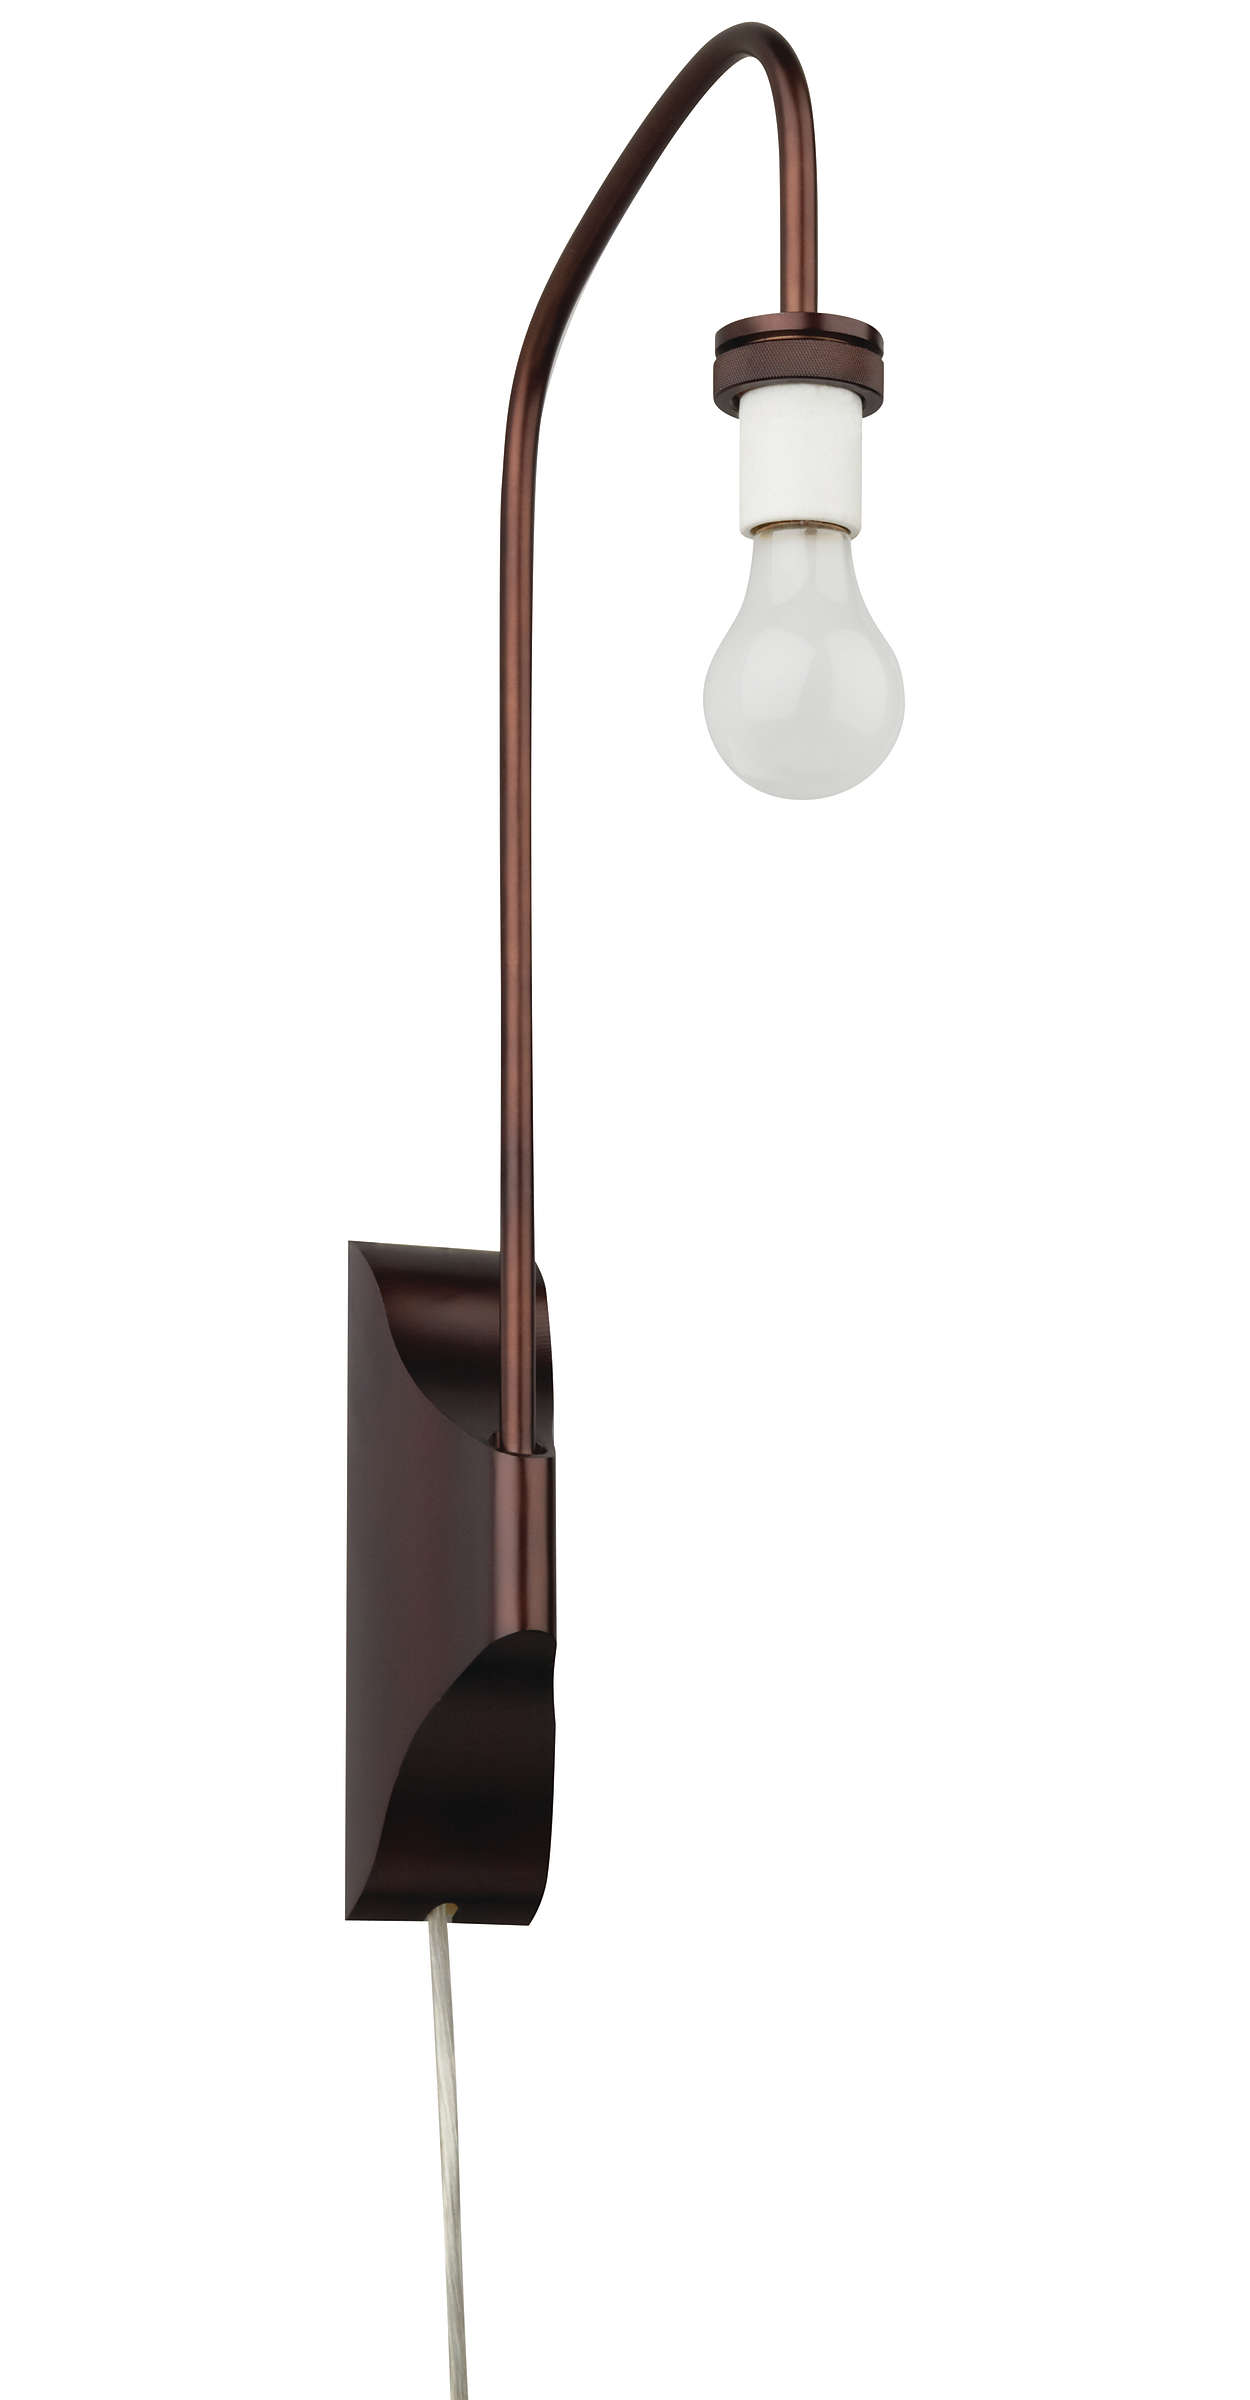 Solstice 1-light Wall in Merlot Bronze finish